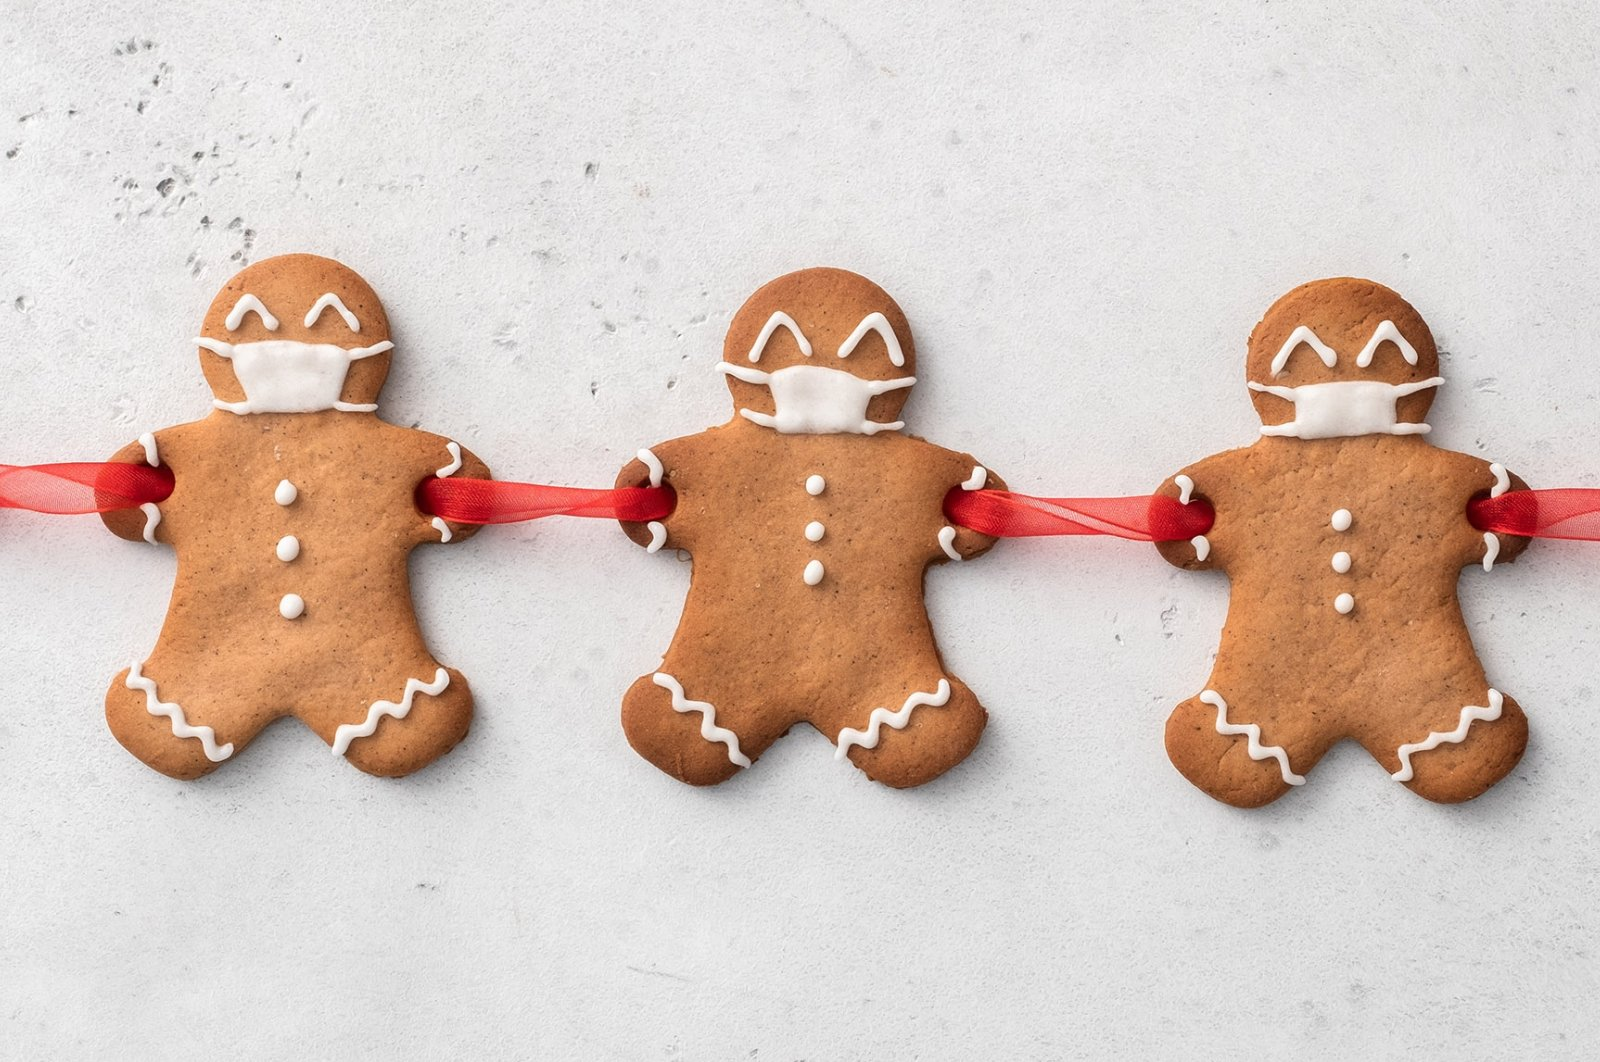 Cut out holes in your gingerbread men's hands before cooking to join them together with a ribbon and add icing masks. (Shutterstock Photo)